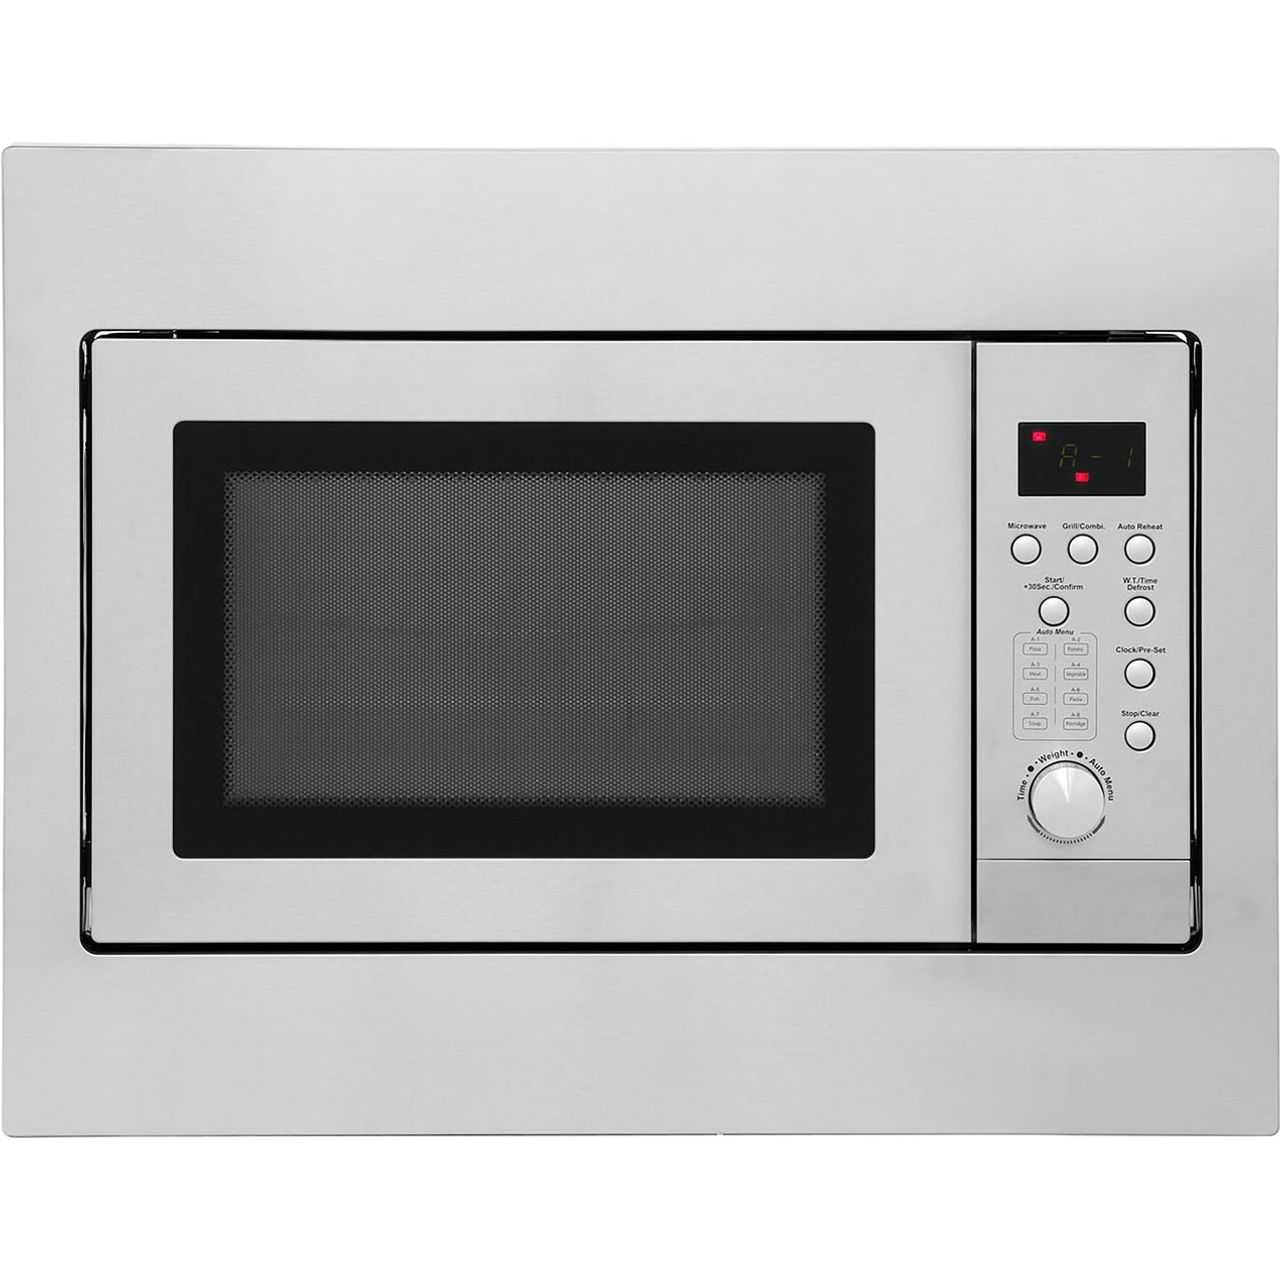 Newworld Uim600 Built In Microwave With Grill Stainless Steel